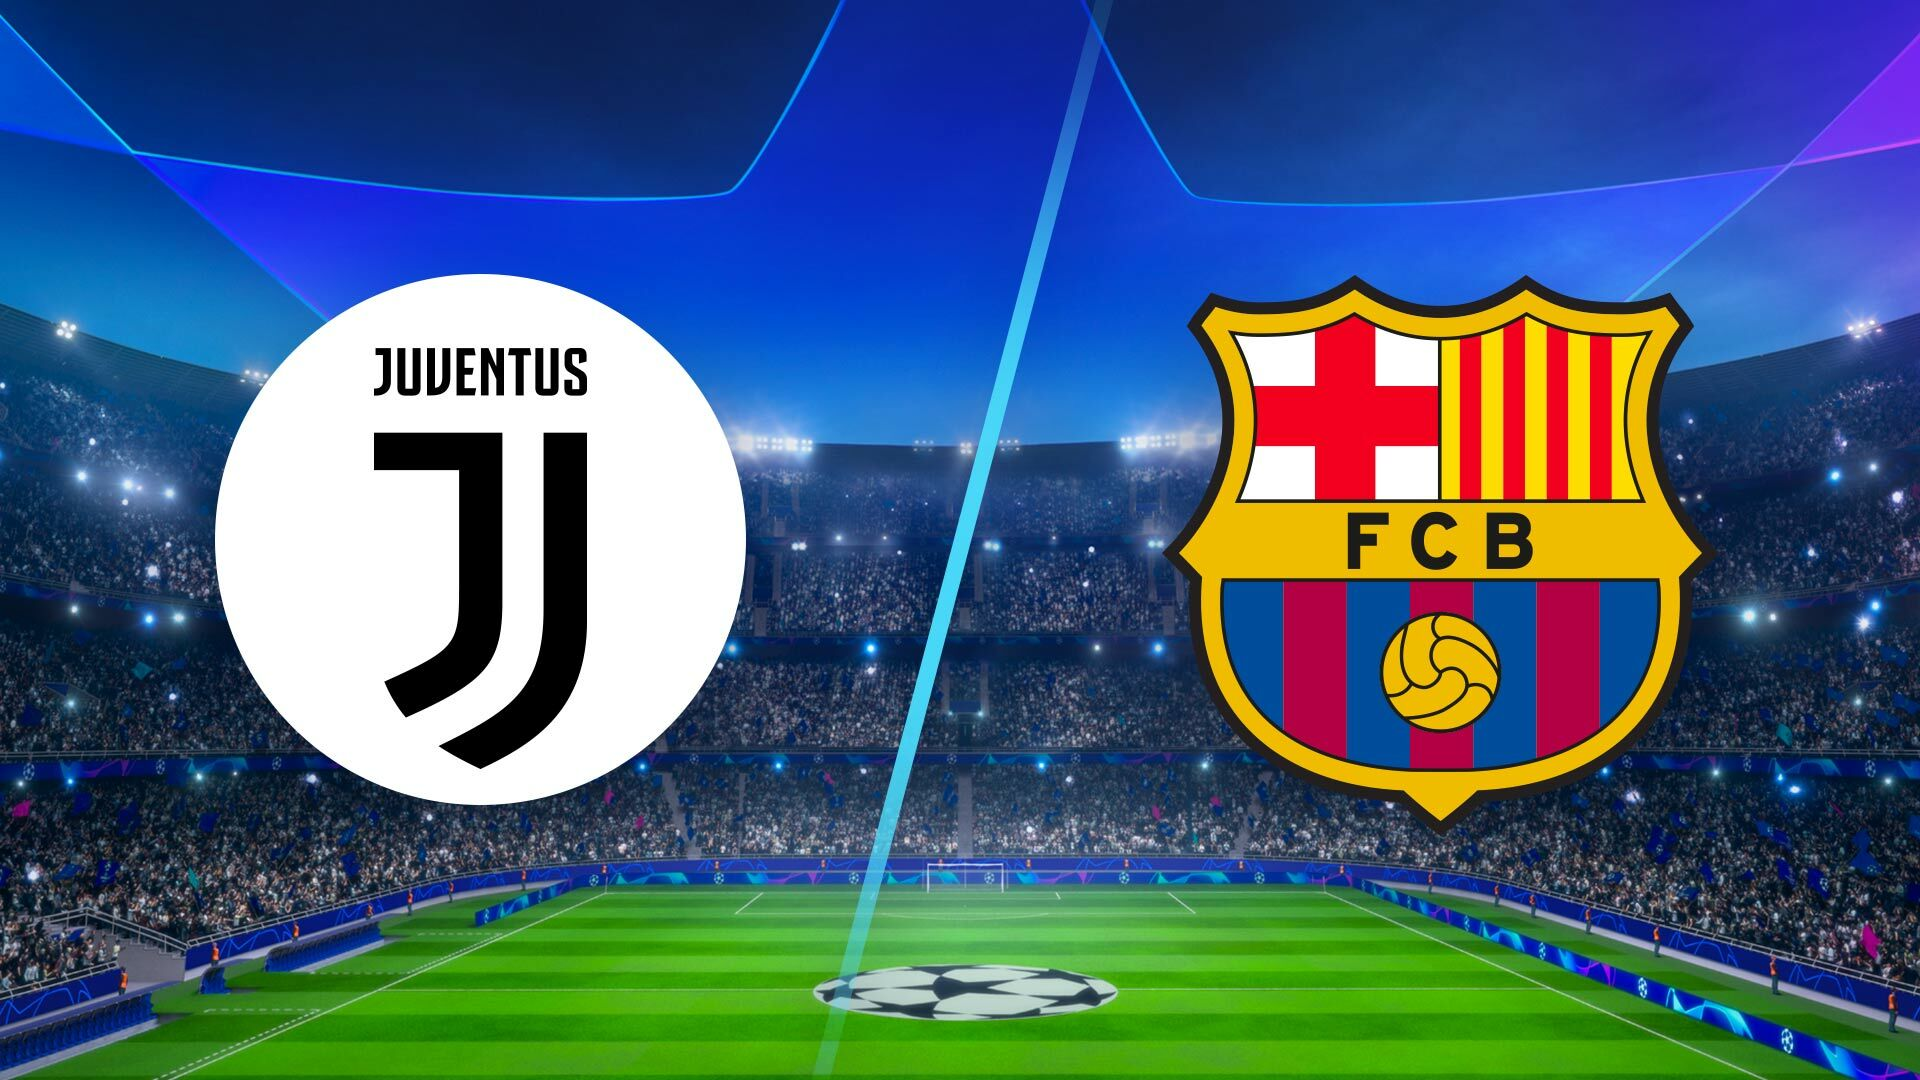 Watch Uefa Champions League Season 2021 Episode 43 Full Match Replay Juventus Vs Barcelona Full Show On Cbs All Access